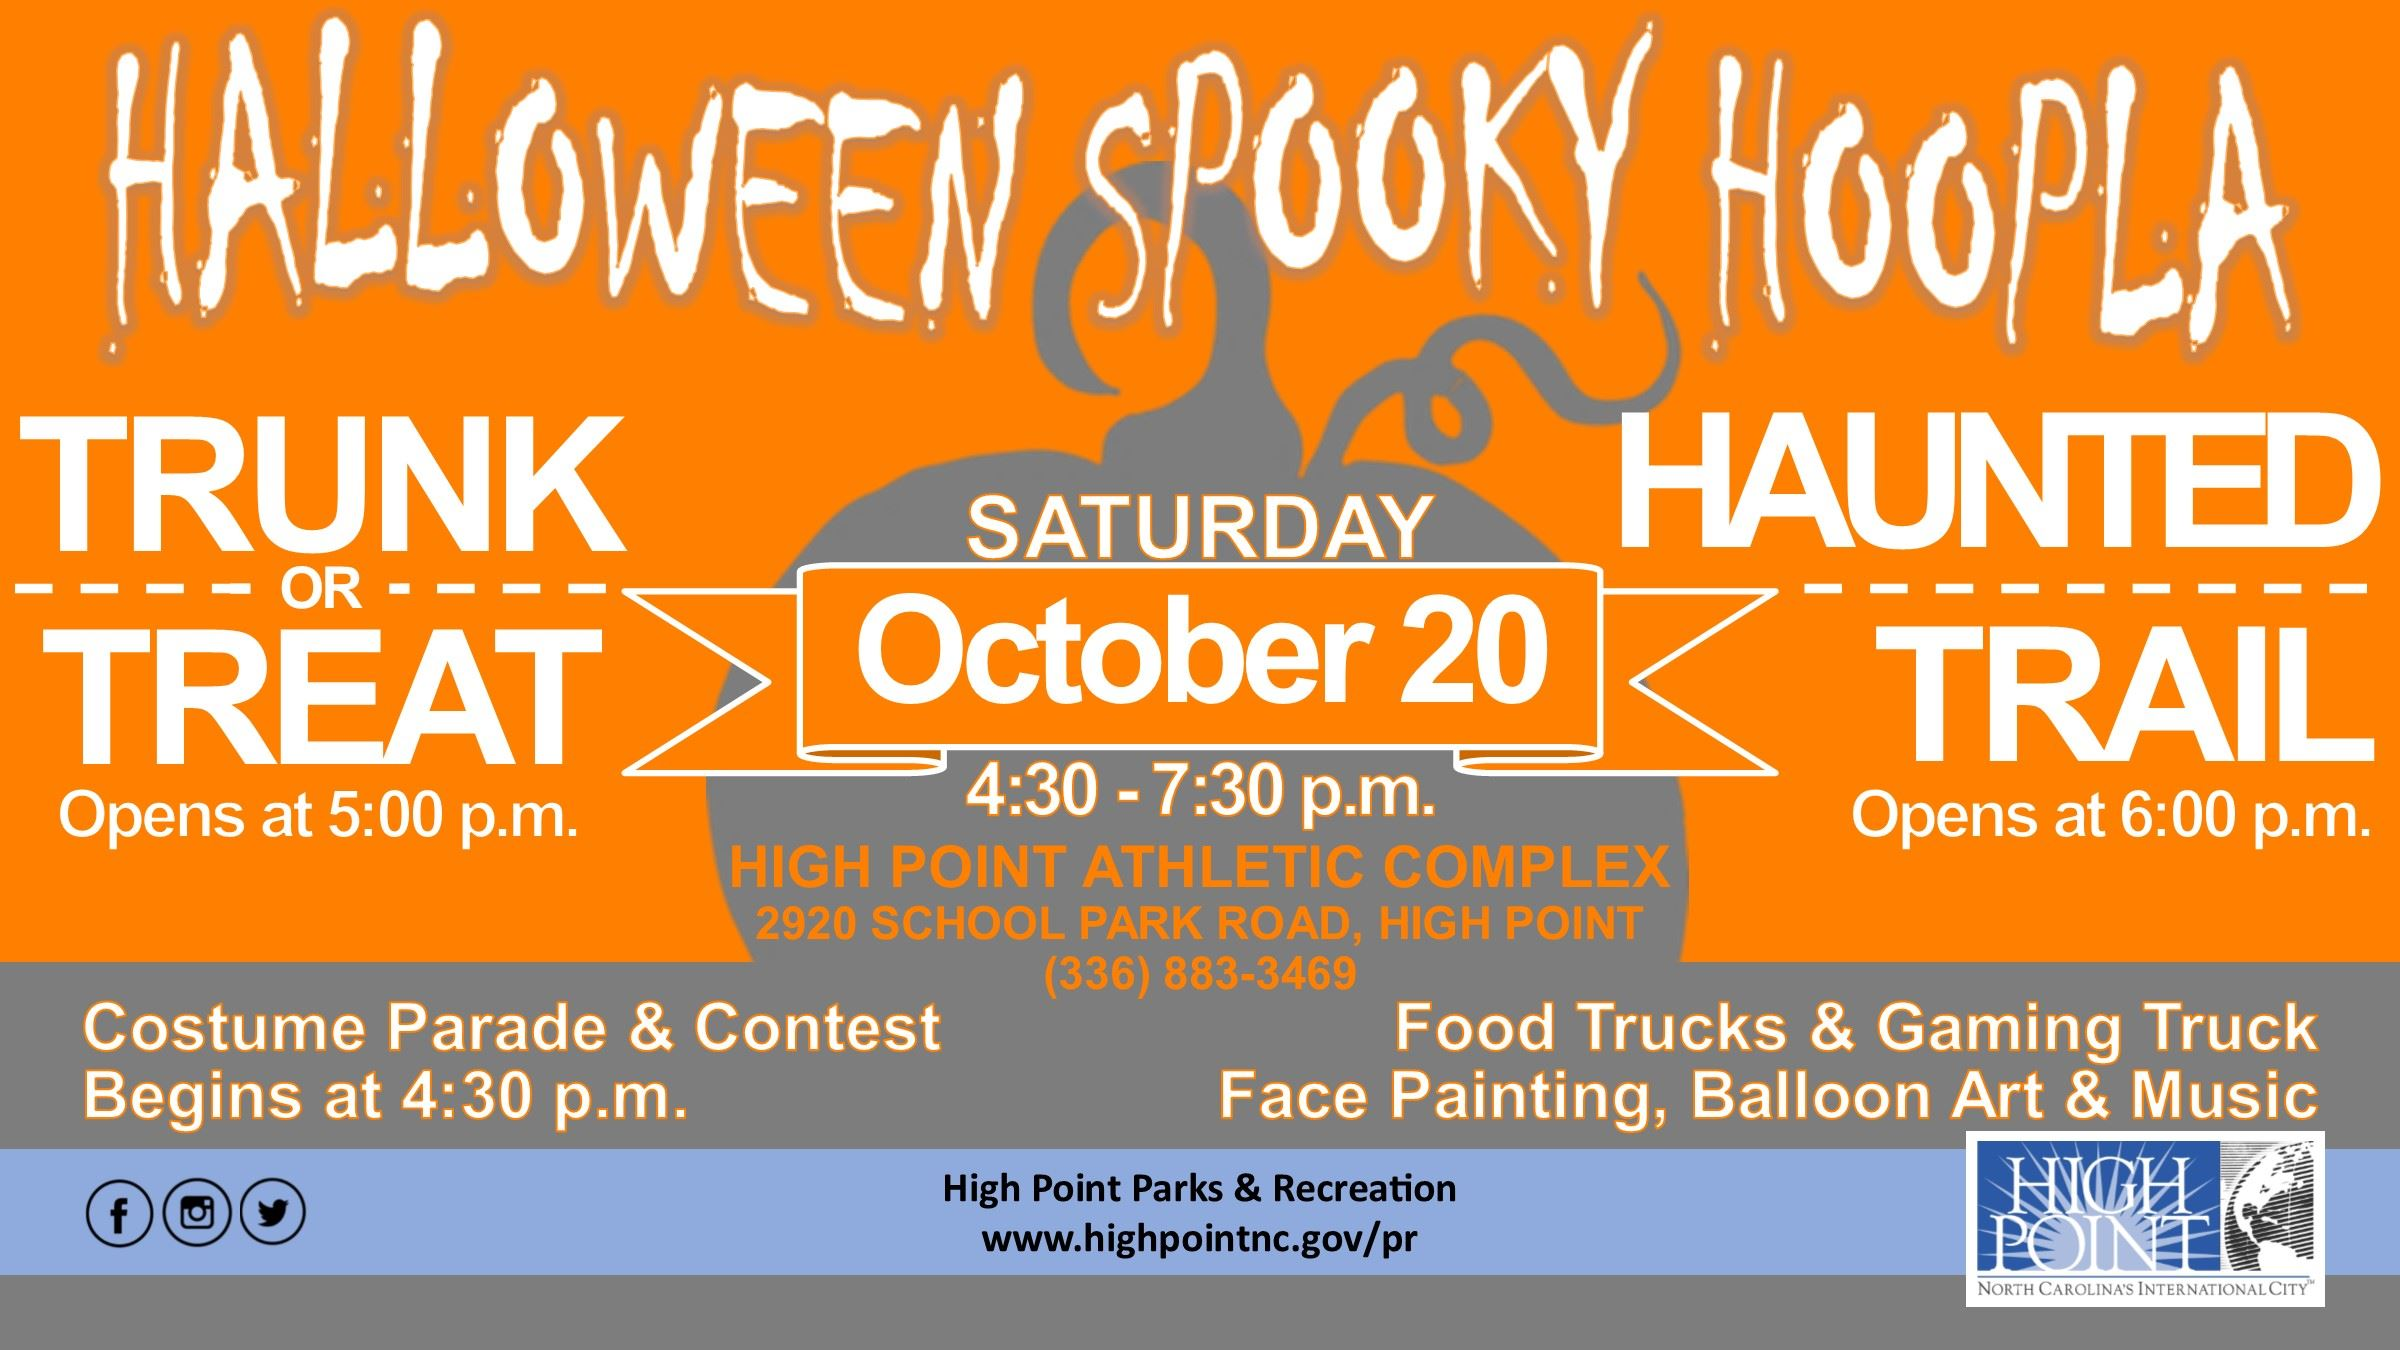 HalloweenSpookyHoopla2018